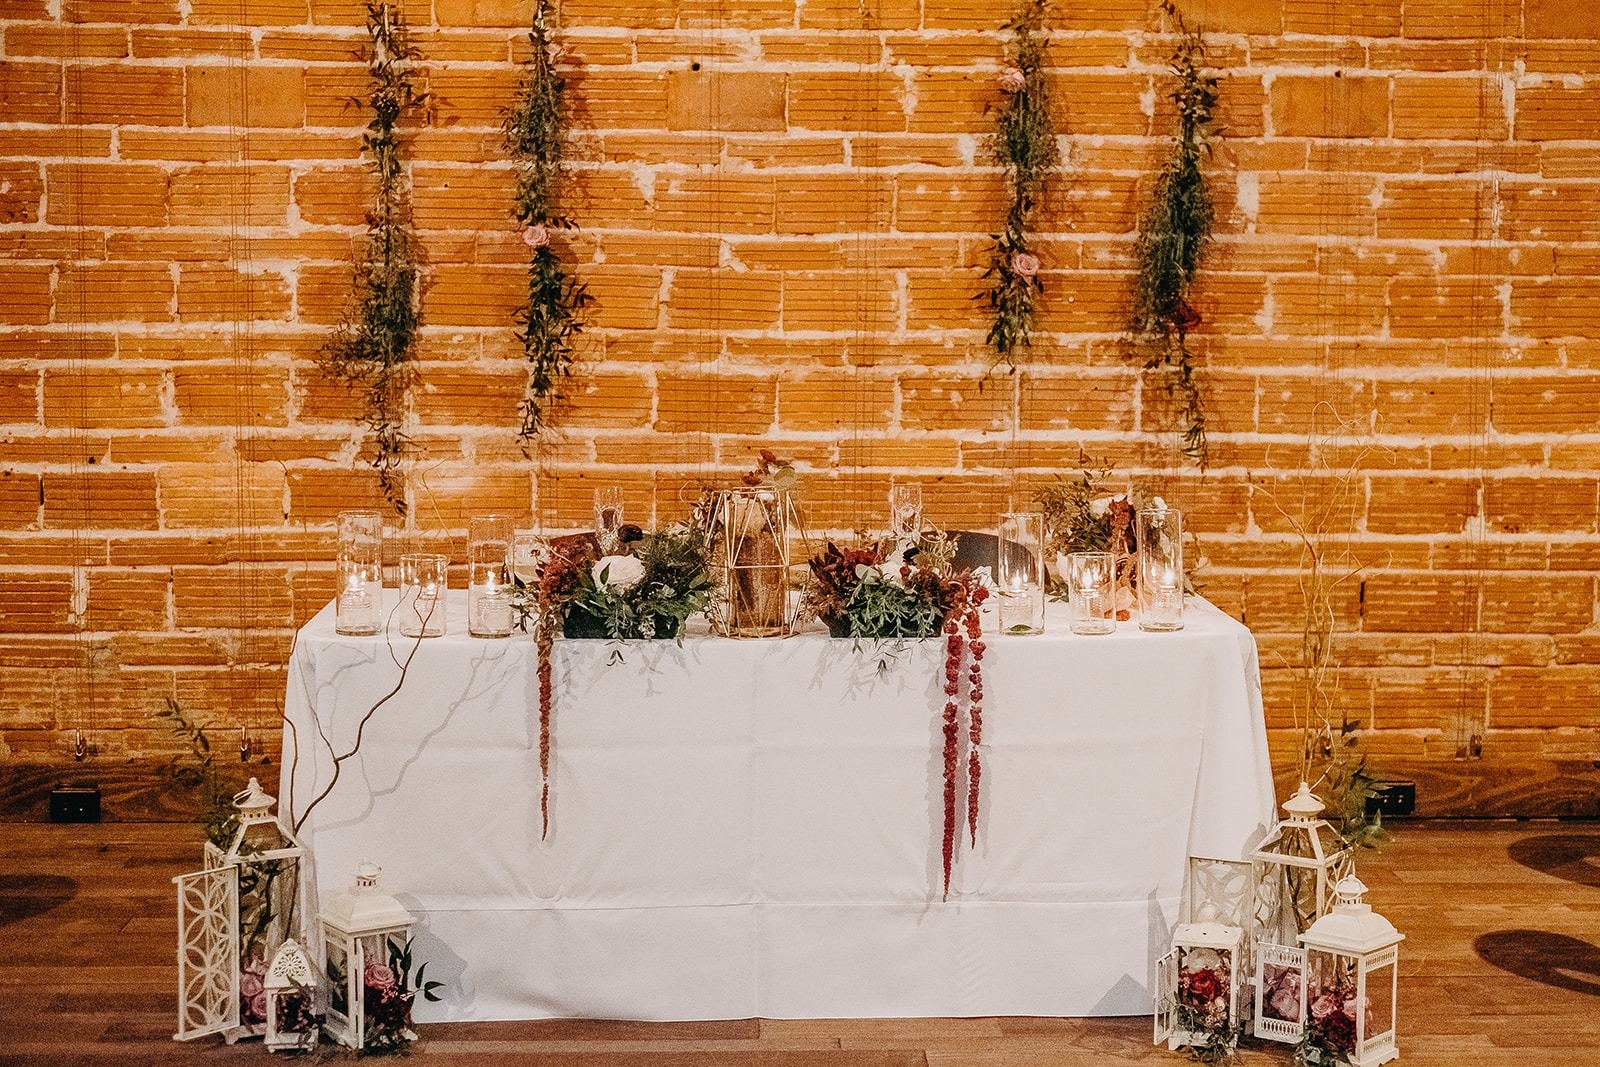 Romantic Sweetheart Table with Vintage Wedding Decor, Against Exposed Red Brick Wall Backdrop | St. Pete Unique Wedding Venue NOVA 535